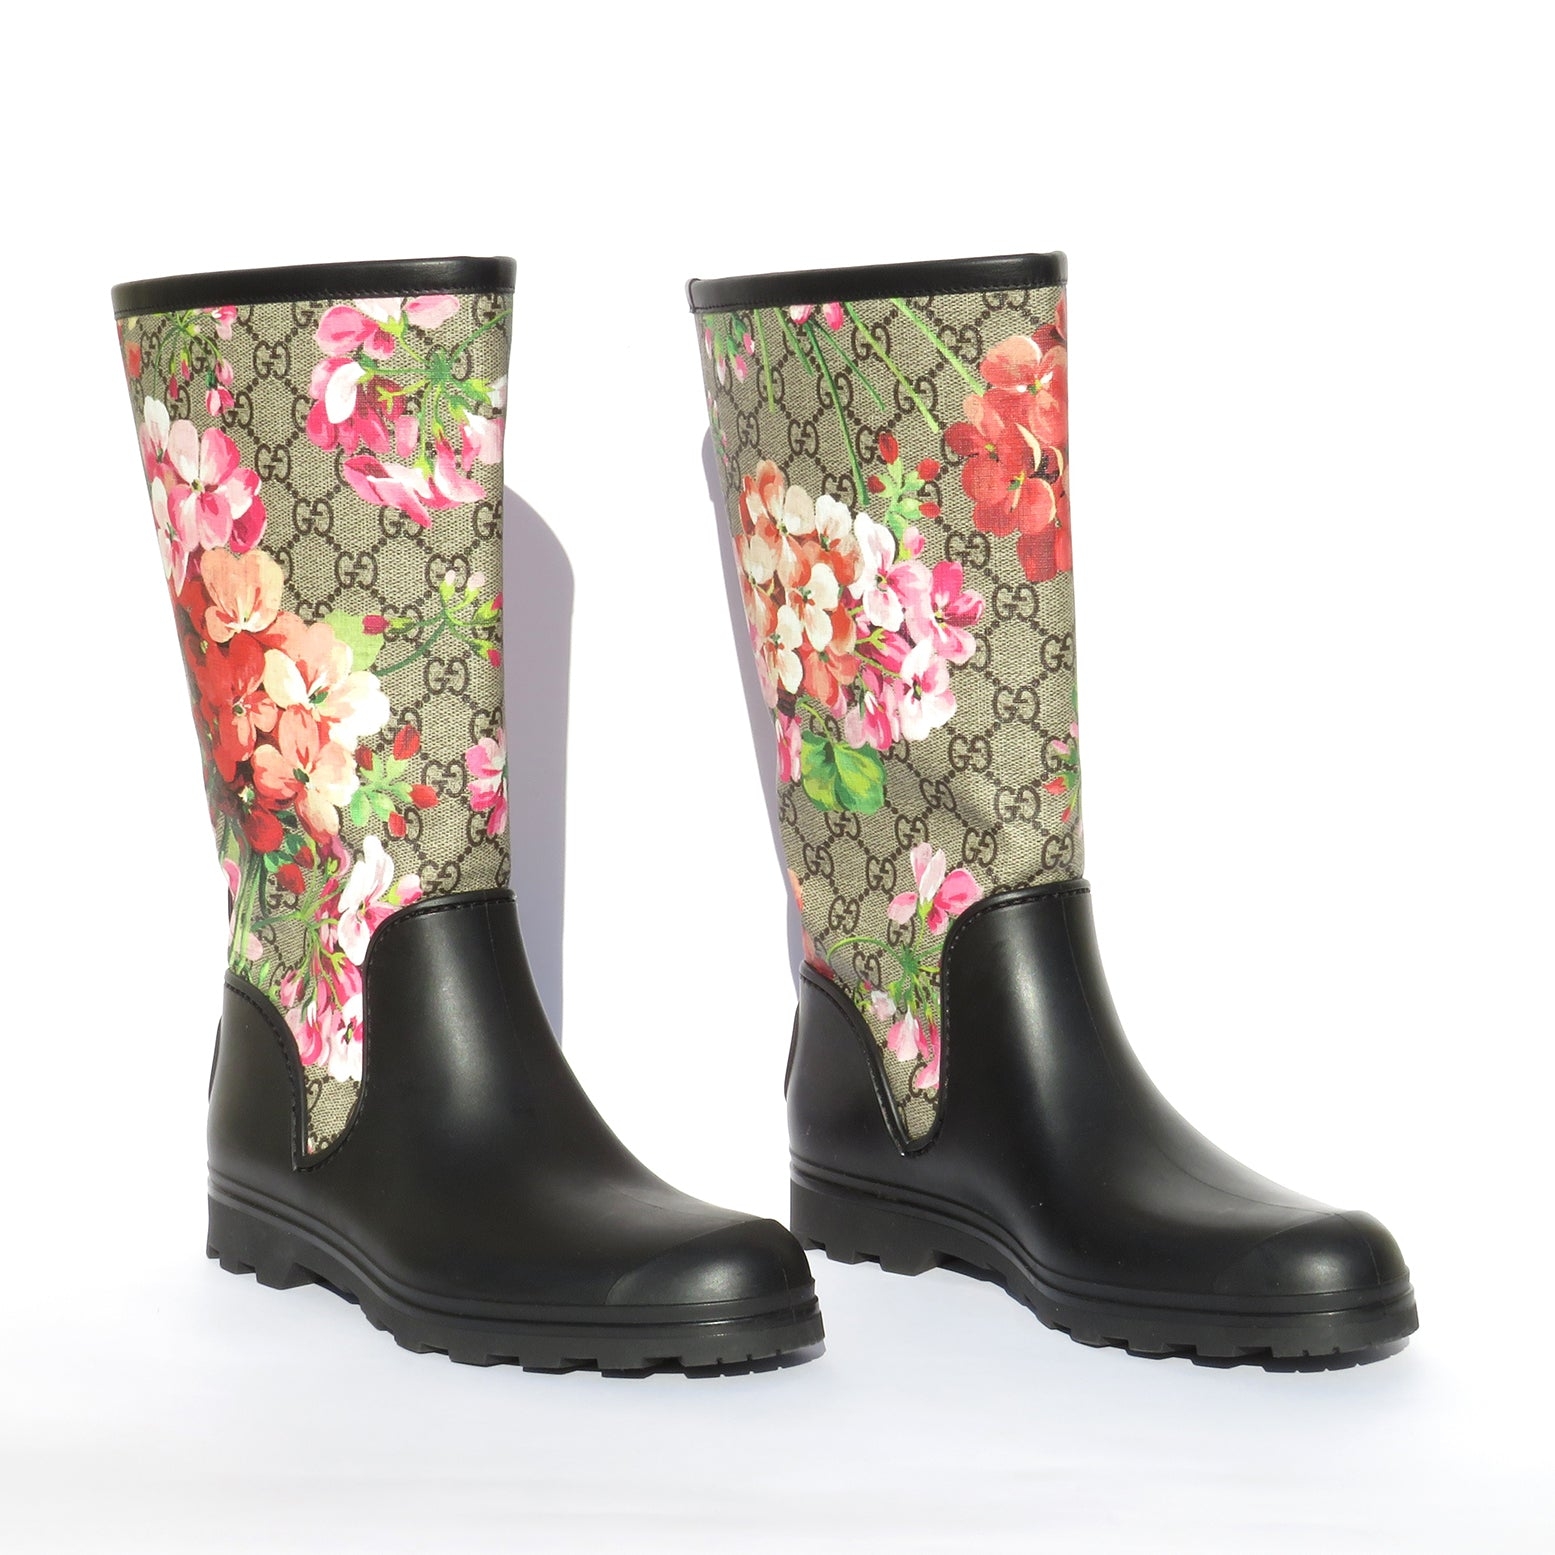 GUCCI Prato Supreme GG Blooms Multi Pink Black Rubber Wellies Rain Boots 38 EC